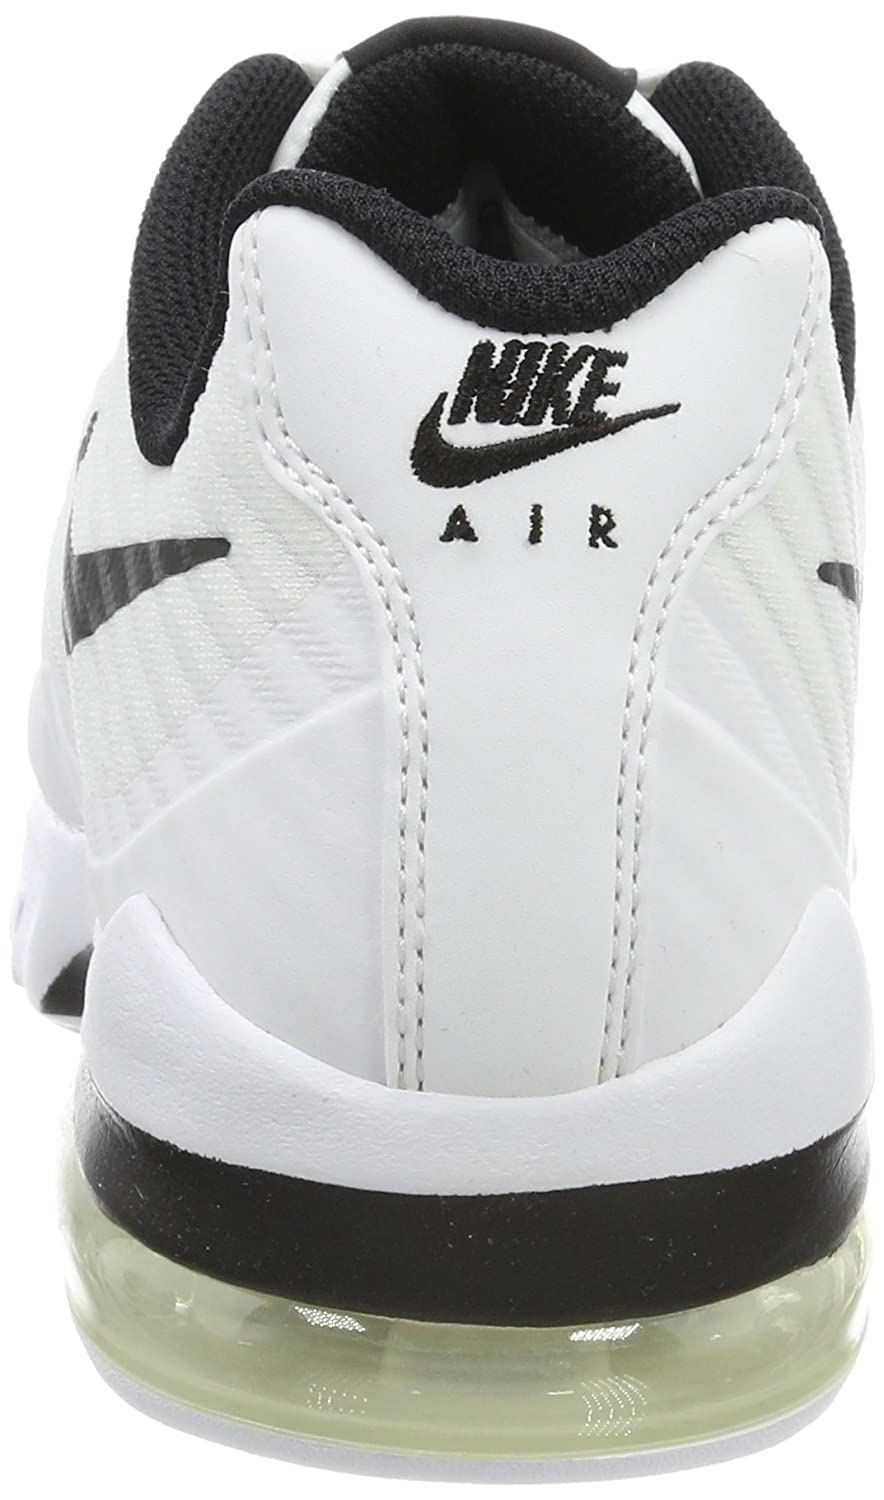 on sale bb222 9dfda Zapatillas NIKE para hombre Air Max Invigor SE Running Blanco negro